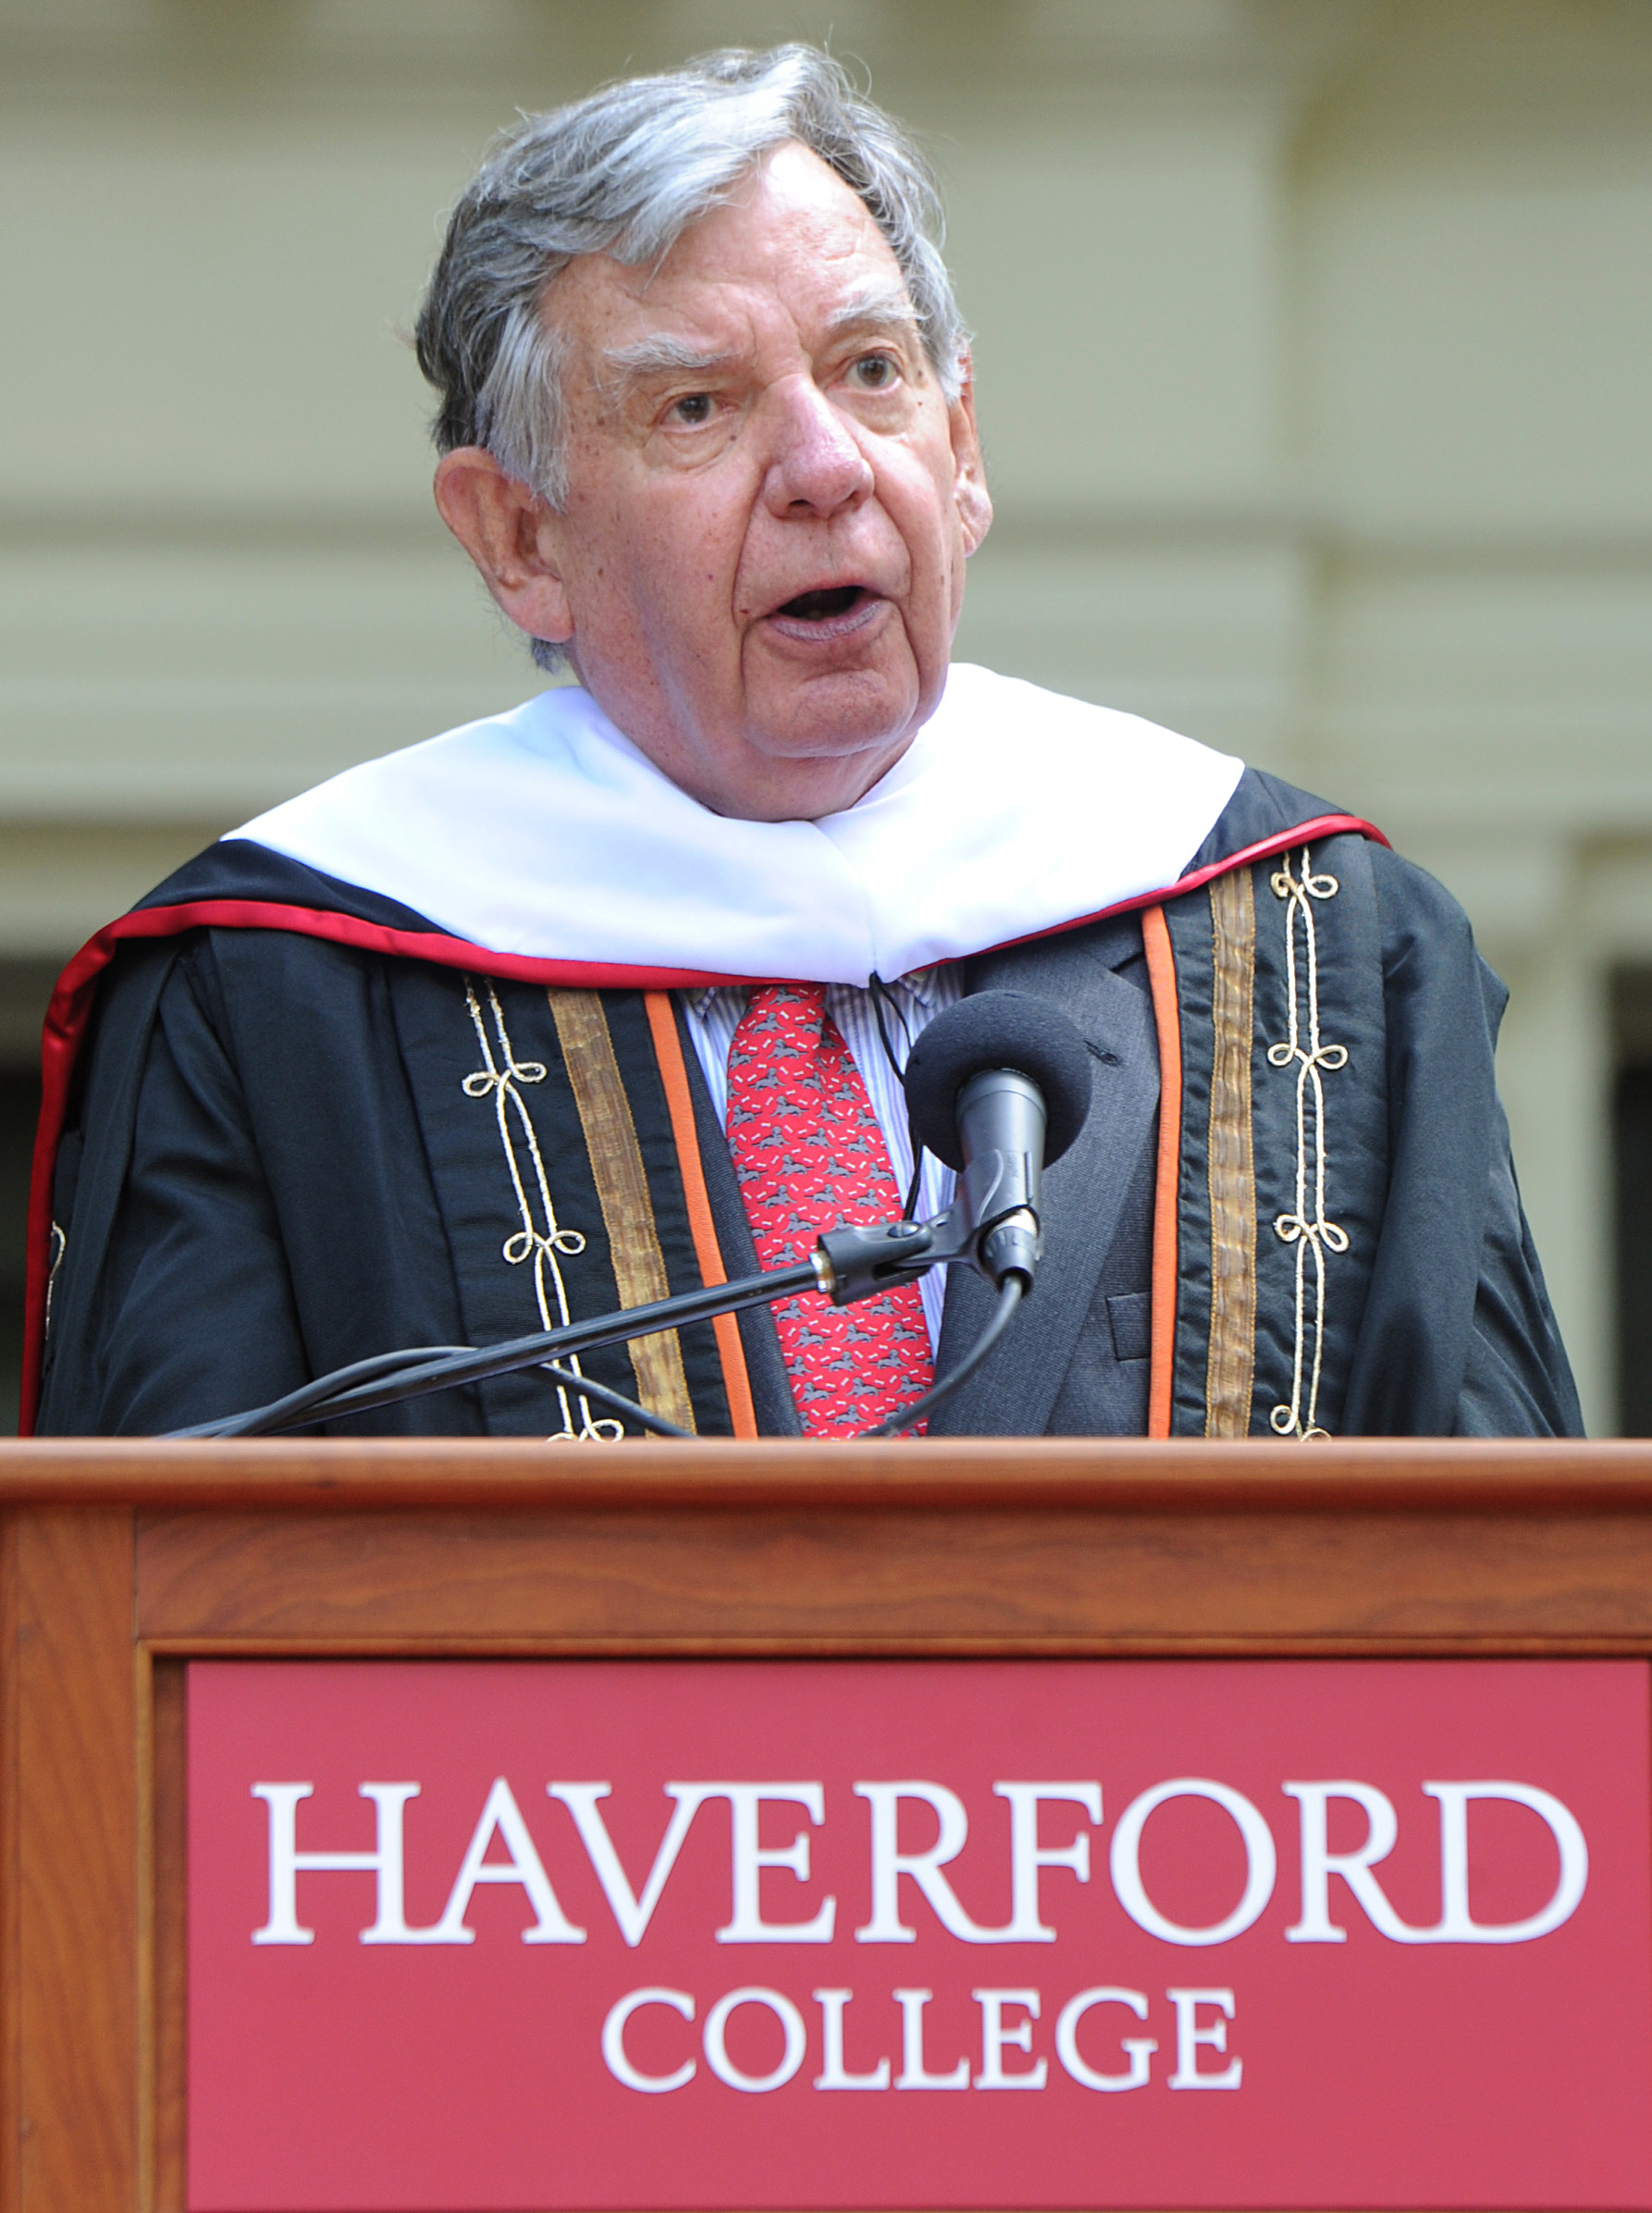 William Bowen, former president of Princeton University, delivers his commencement speech to the graduates of Haverford College on Sunday. He called the controversy over a planned speaker sad and troubling.